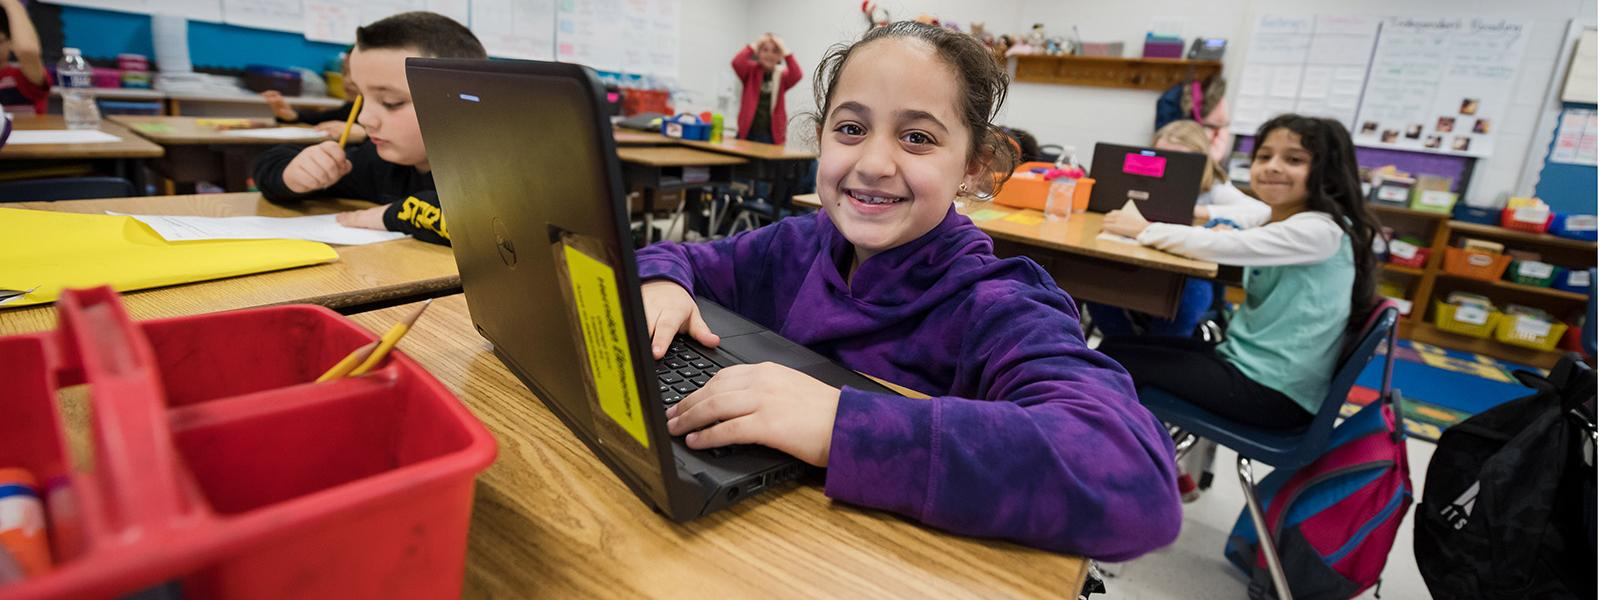 School-based employees are gearing up to help students with online learning; here, Herndon Elementary School students use multiple ways to learn.